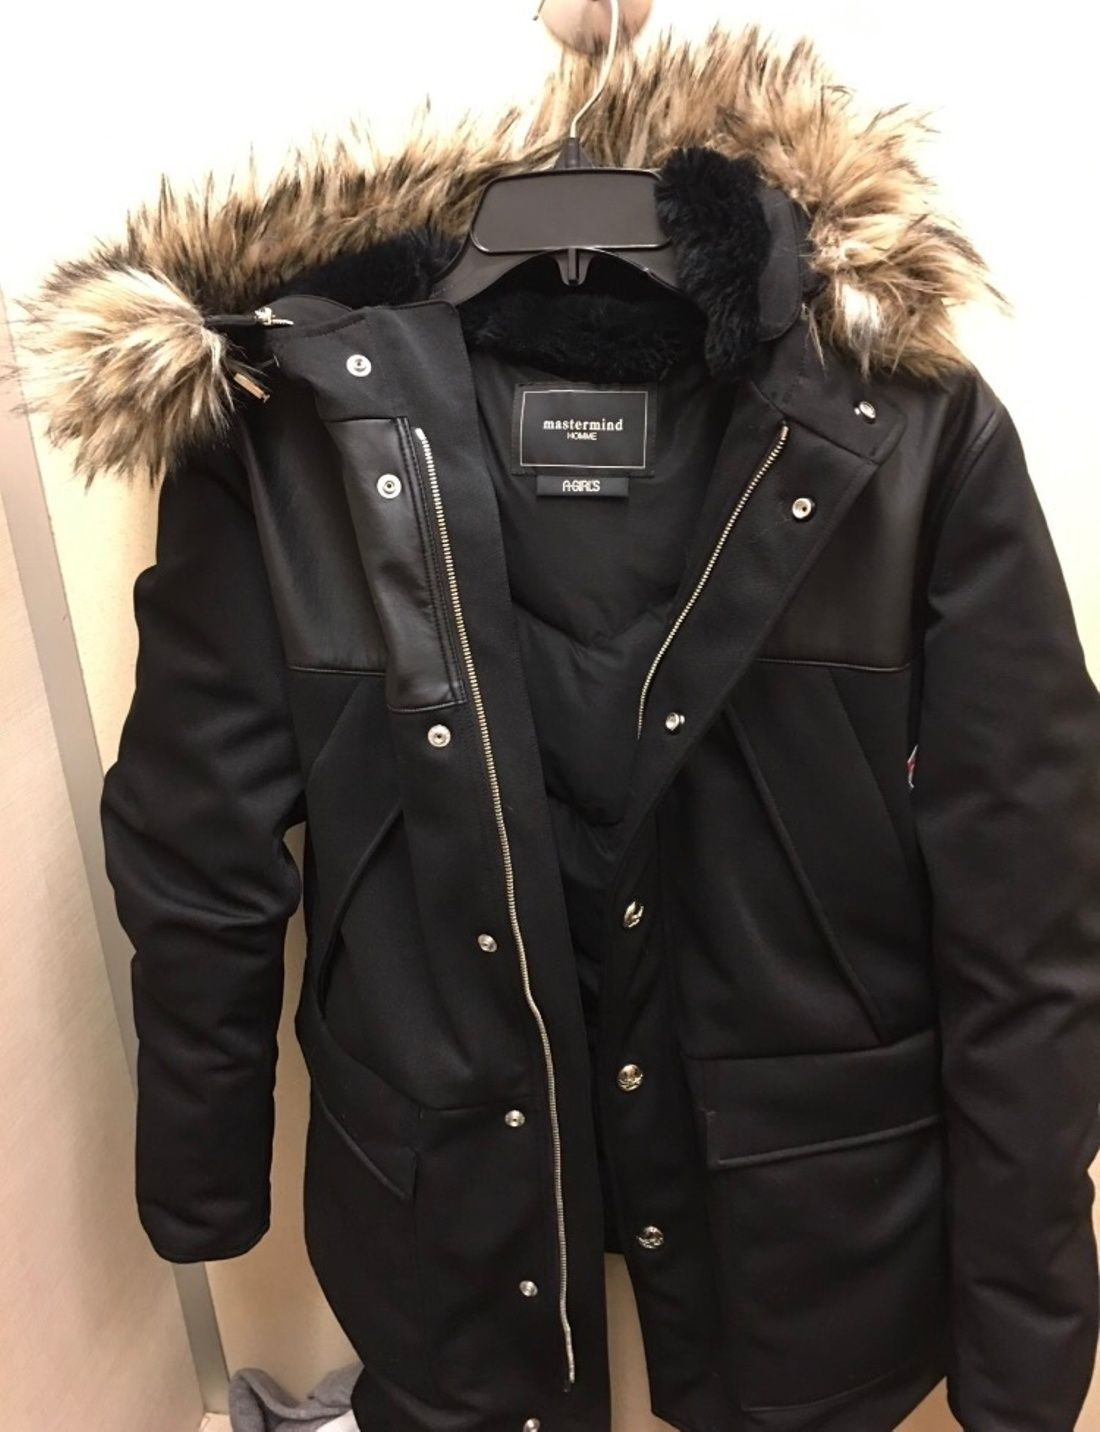 eaa0fcac Mastermind Japan 15 Aw Mmj Mastermind Japan Homme Prima Loft N 3 B Down  Coat Size M Size M $1950 - Grailed